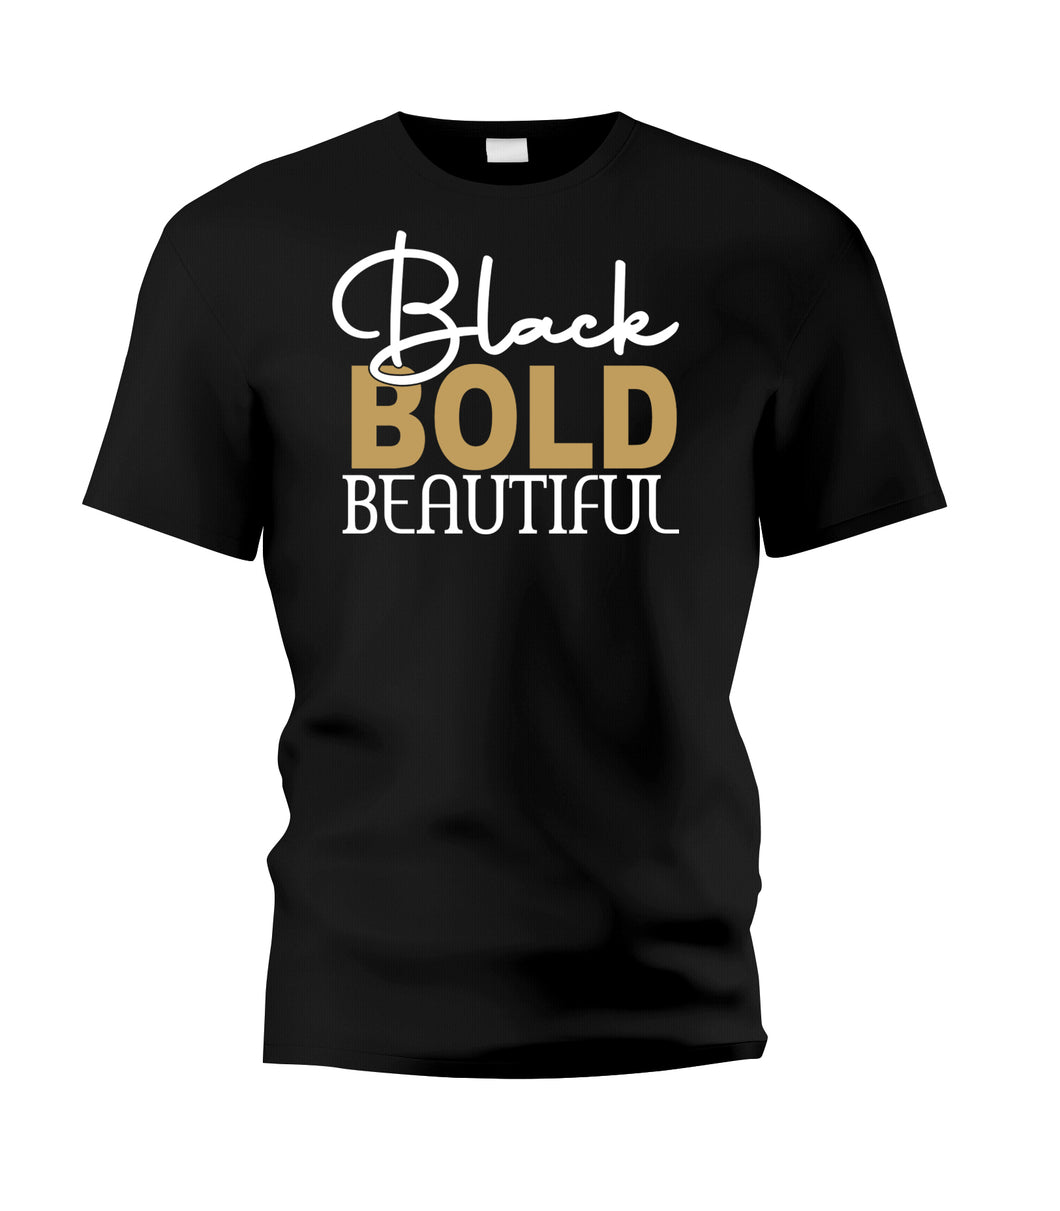 Black BOLD Beautiful Tee